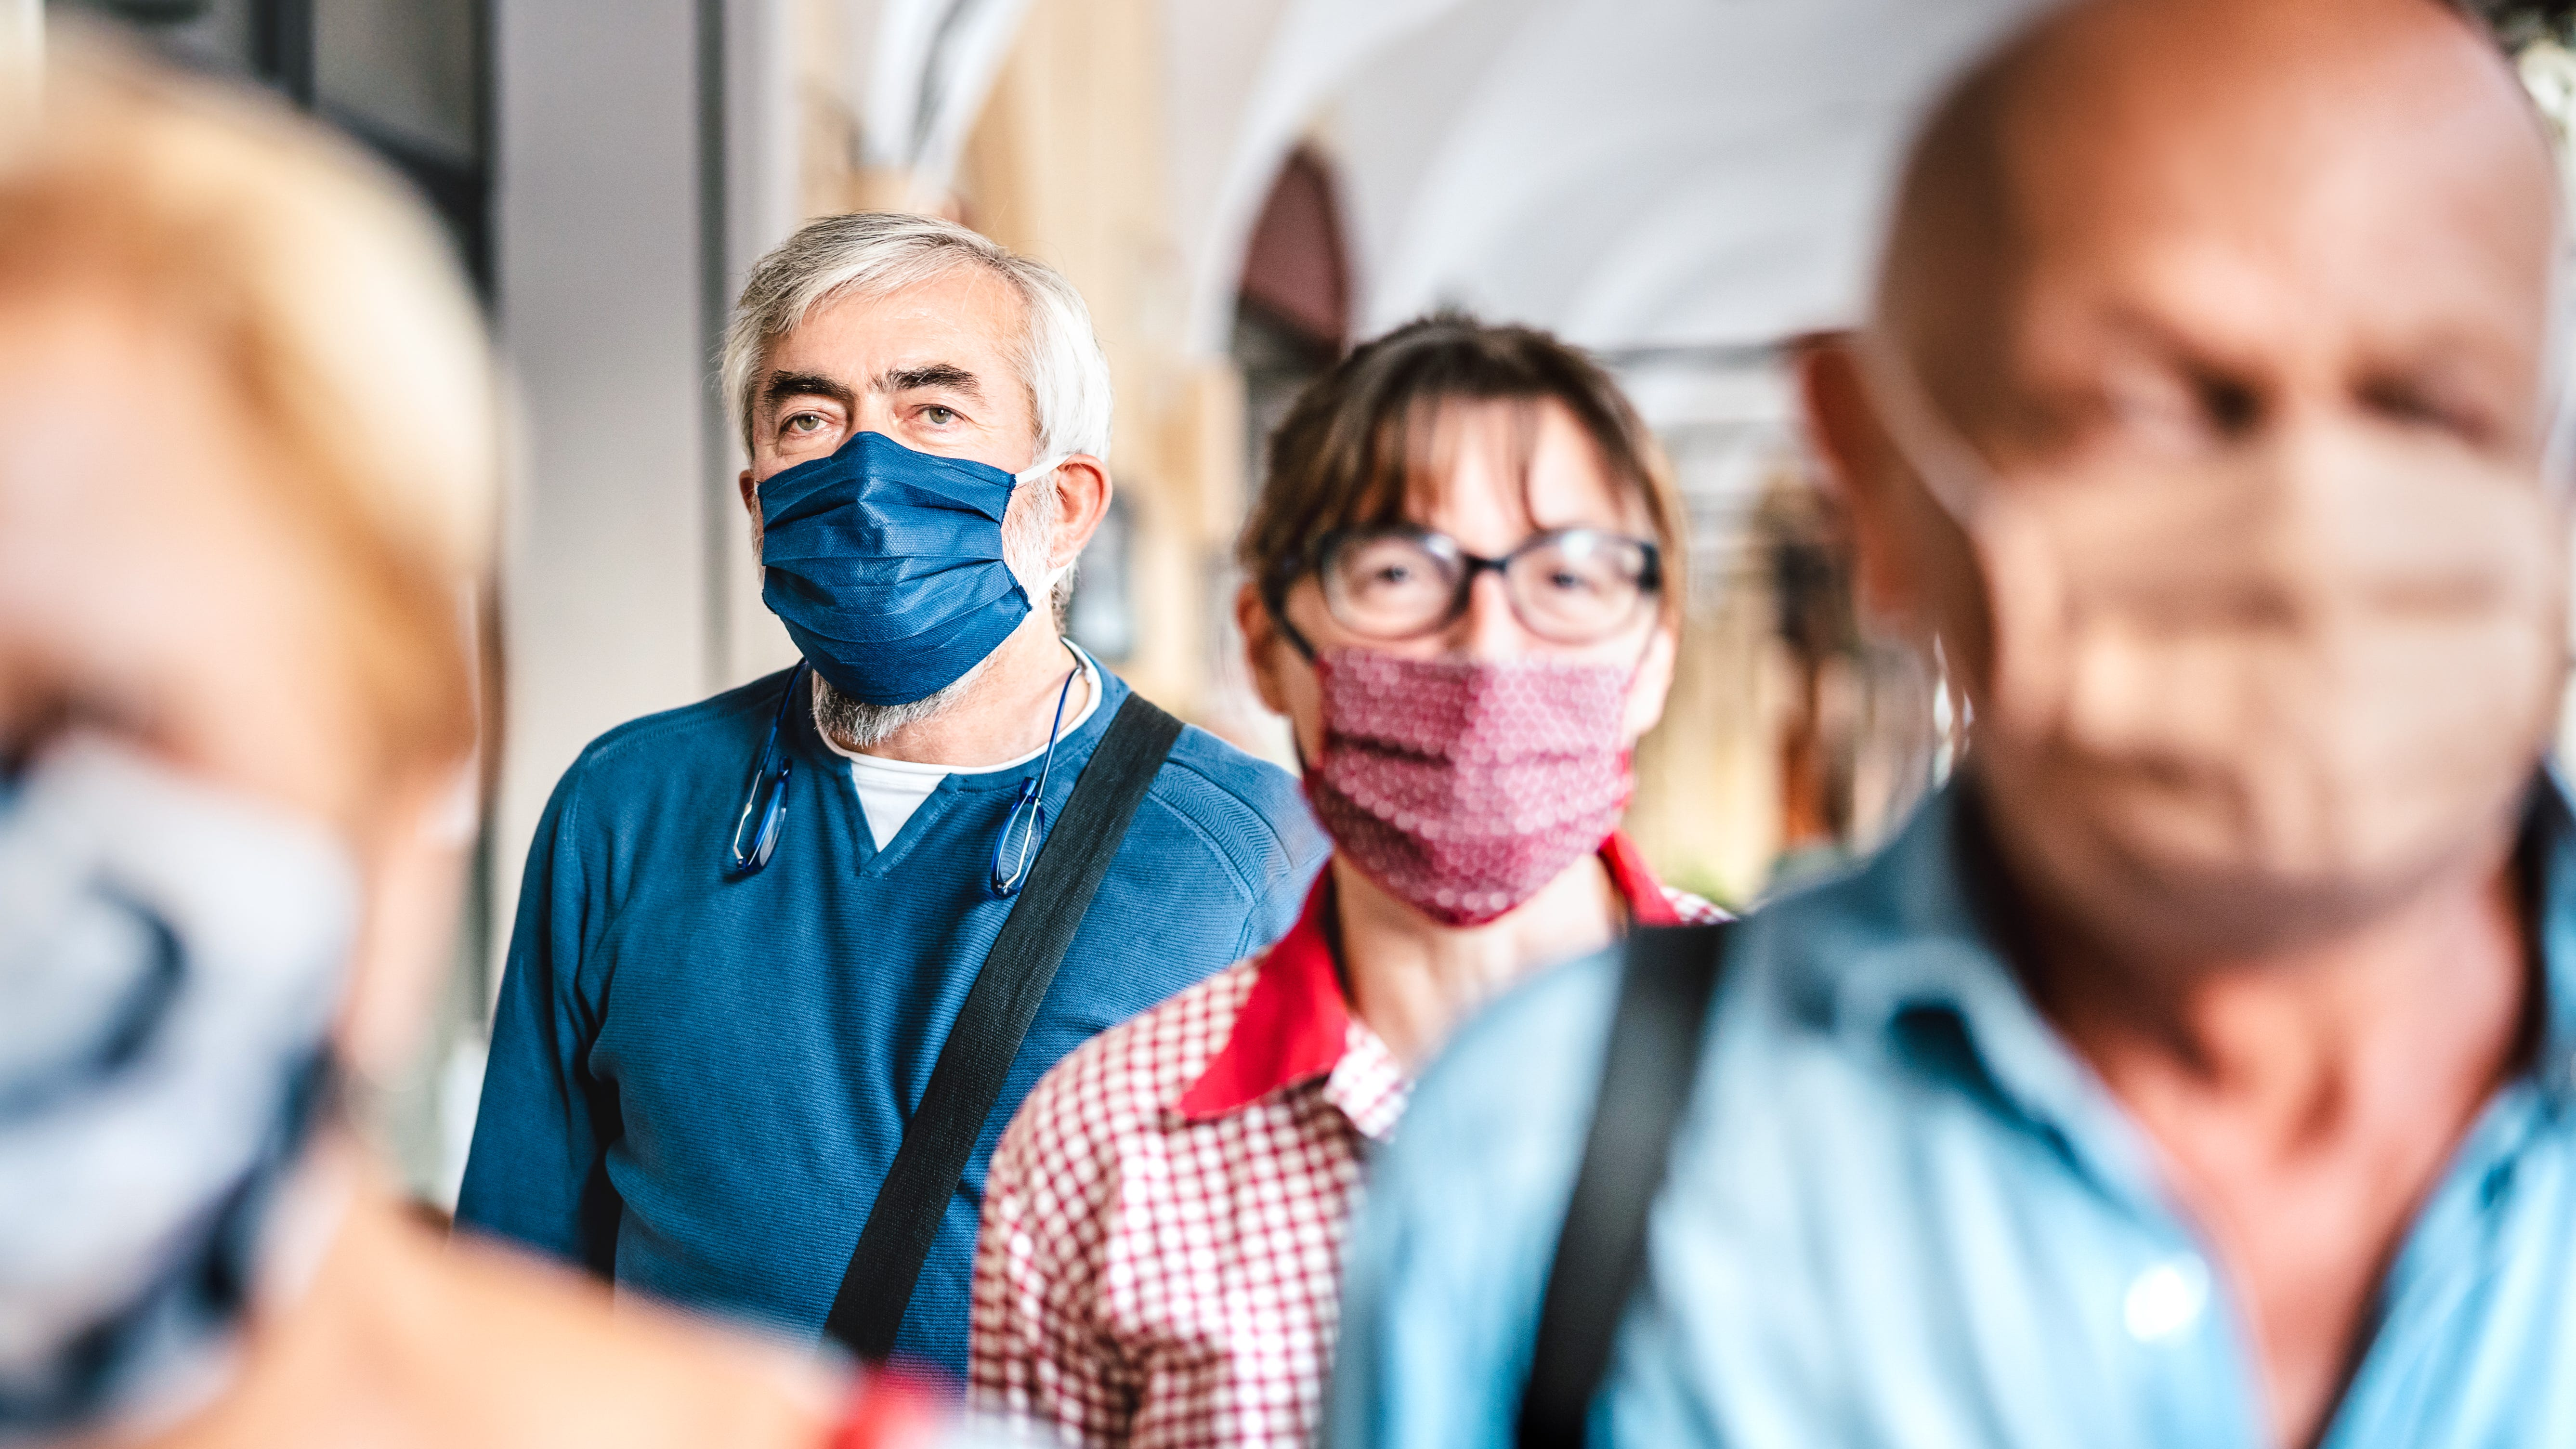 Montco says people should wear a mask indoors, vaccinated or not